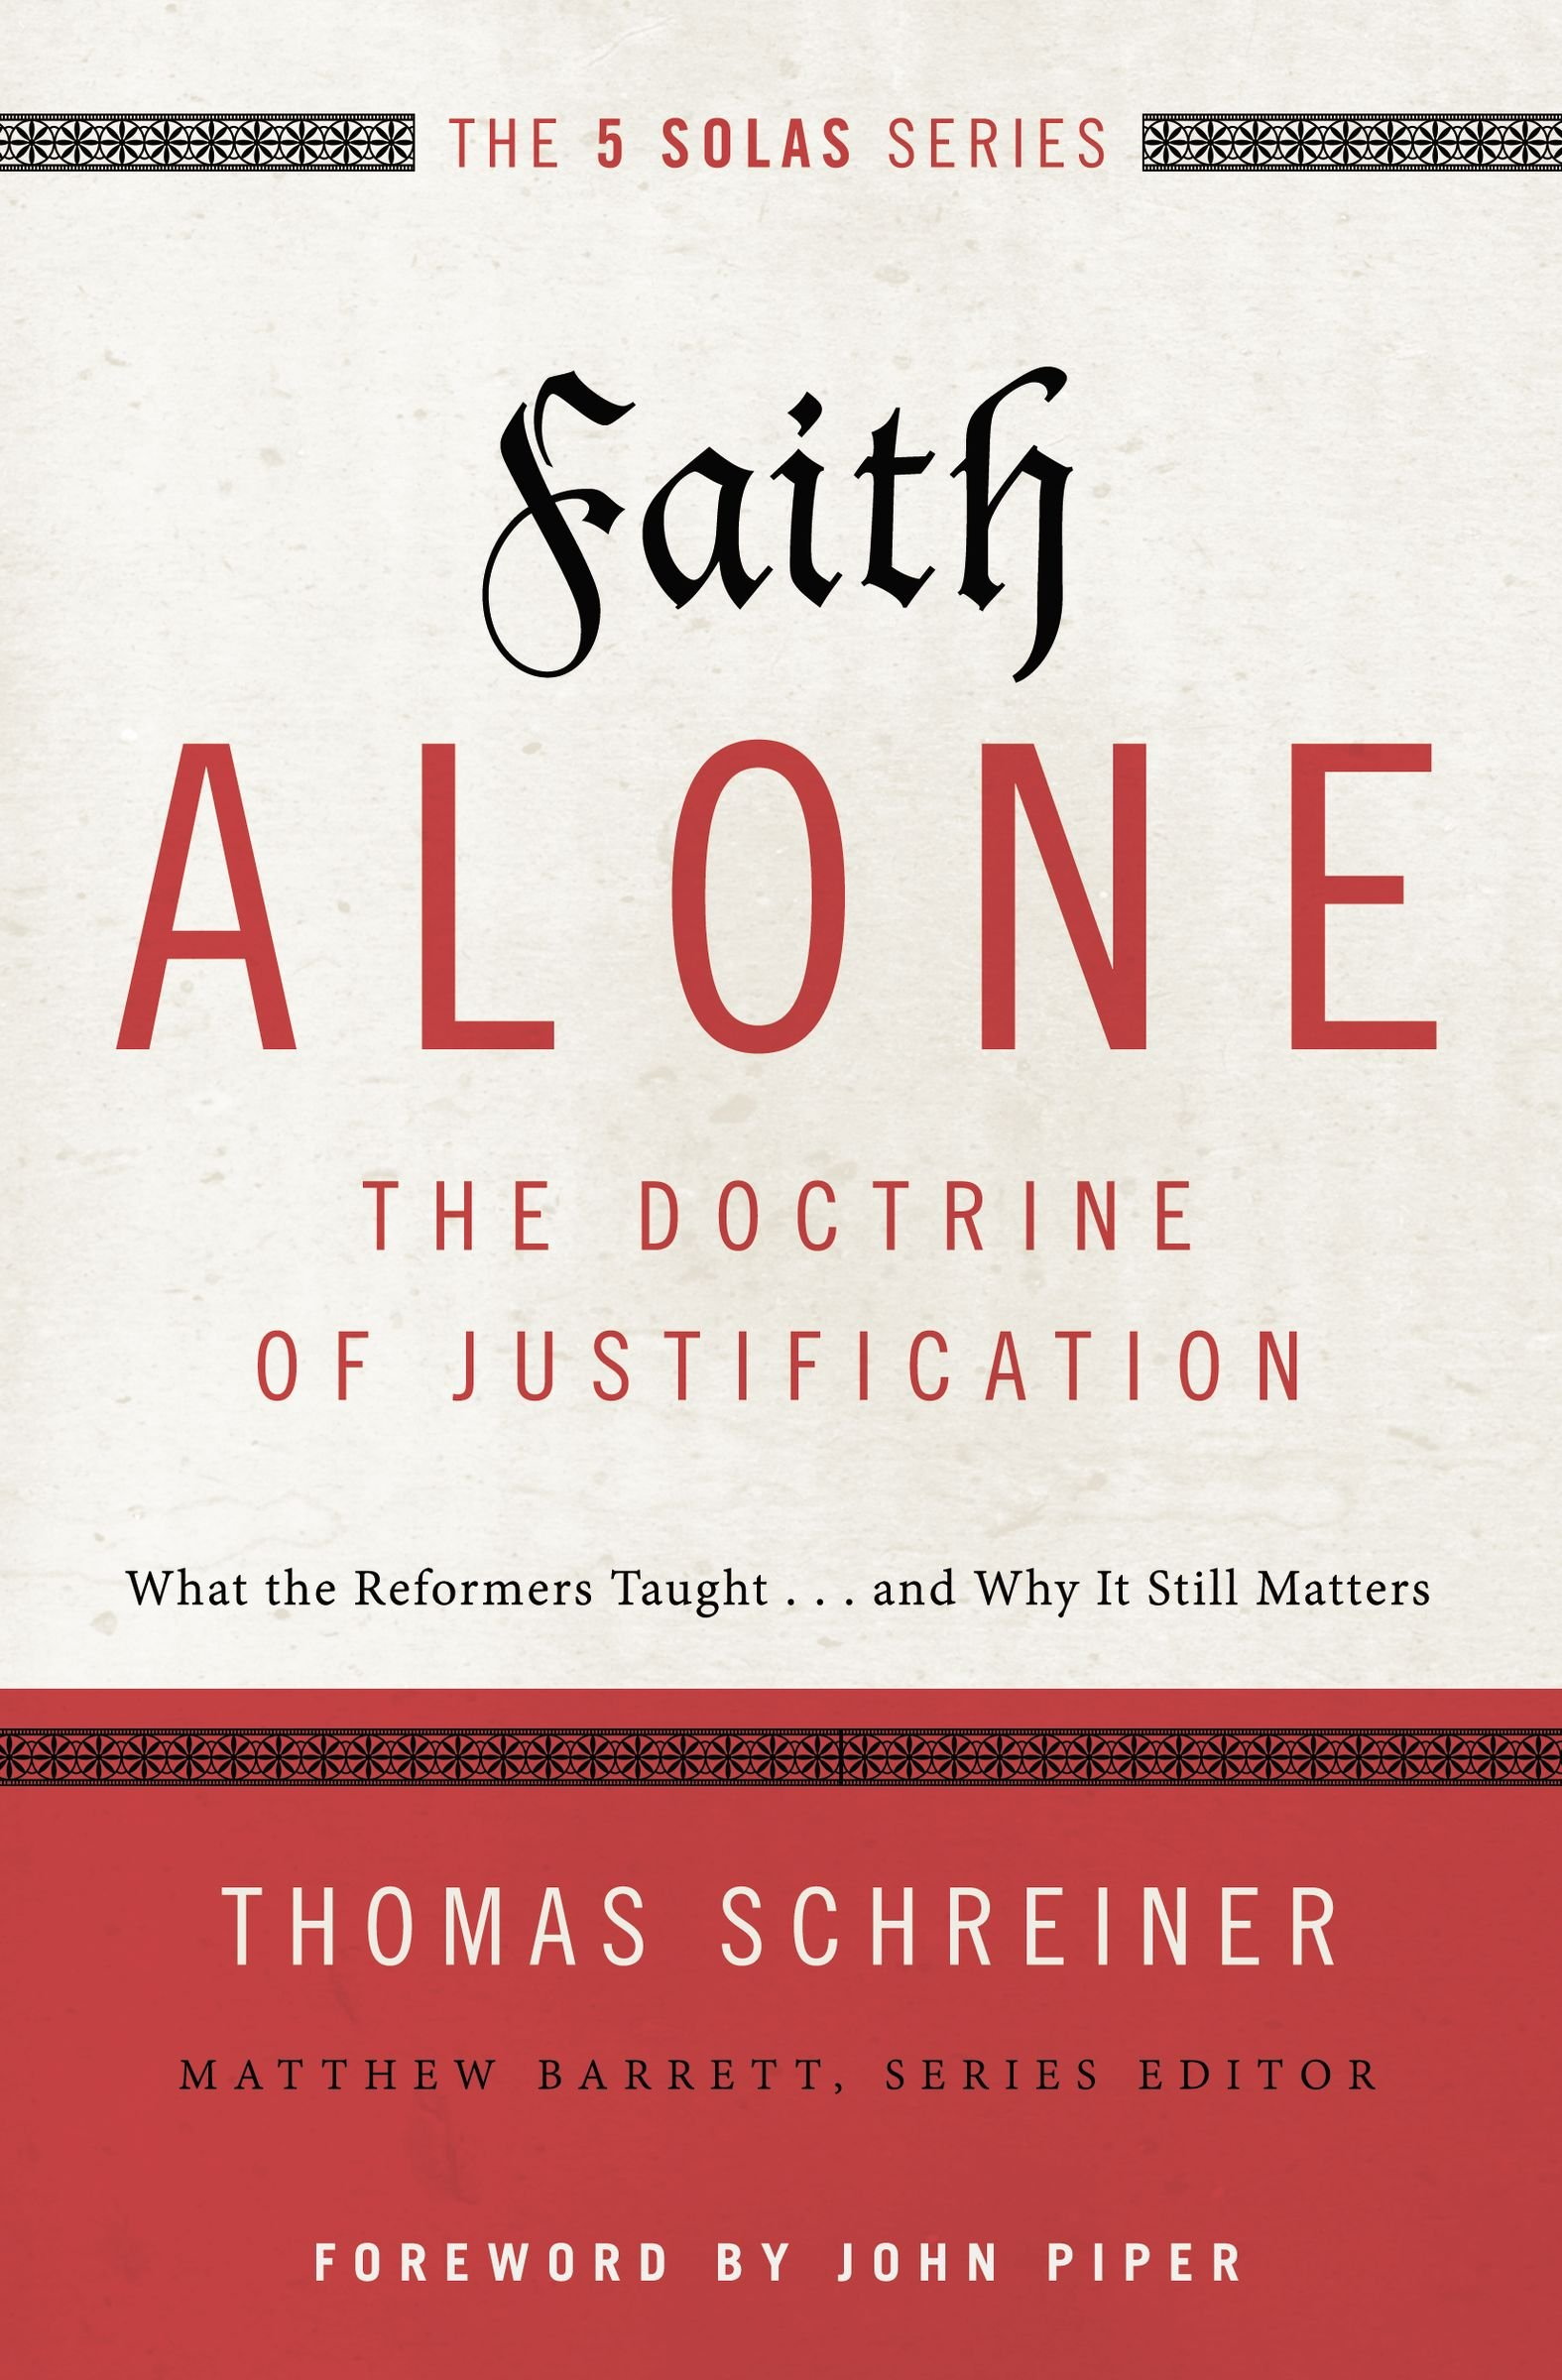 Faith Alone: The Doctrine of Justification by Thomas R. Schreiner